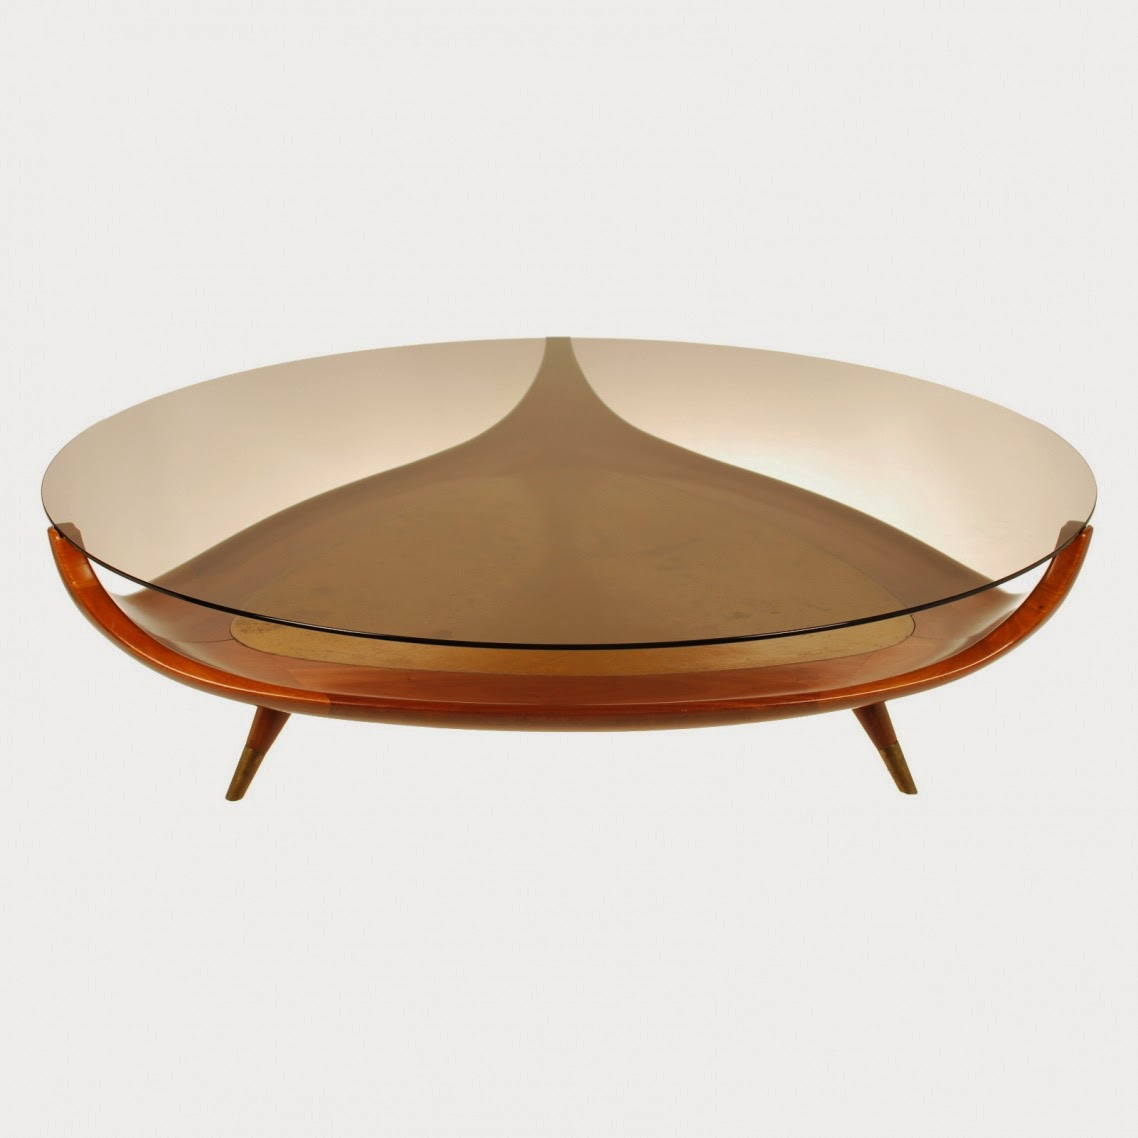 25 Elegant Oval Coffee Table Glass And Wood Styles